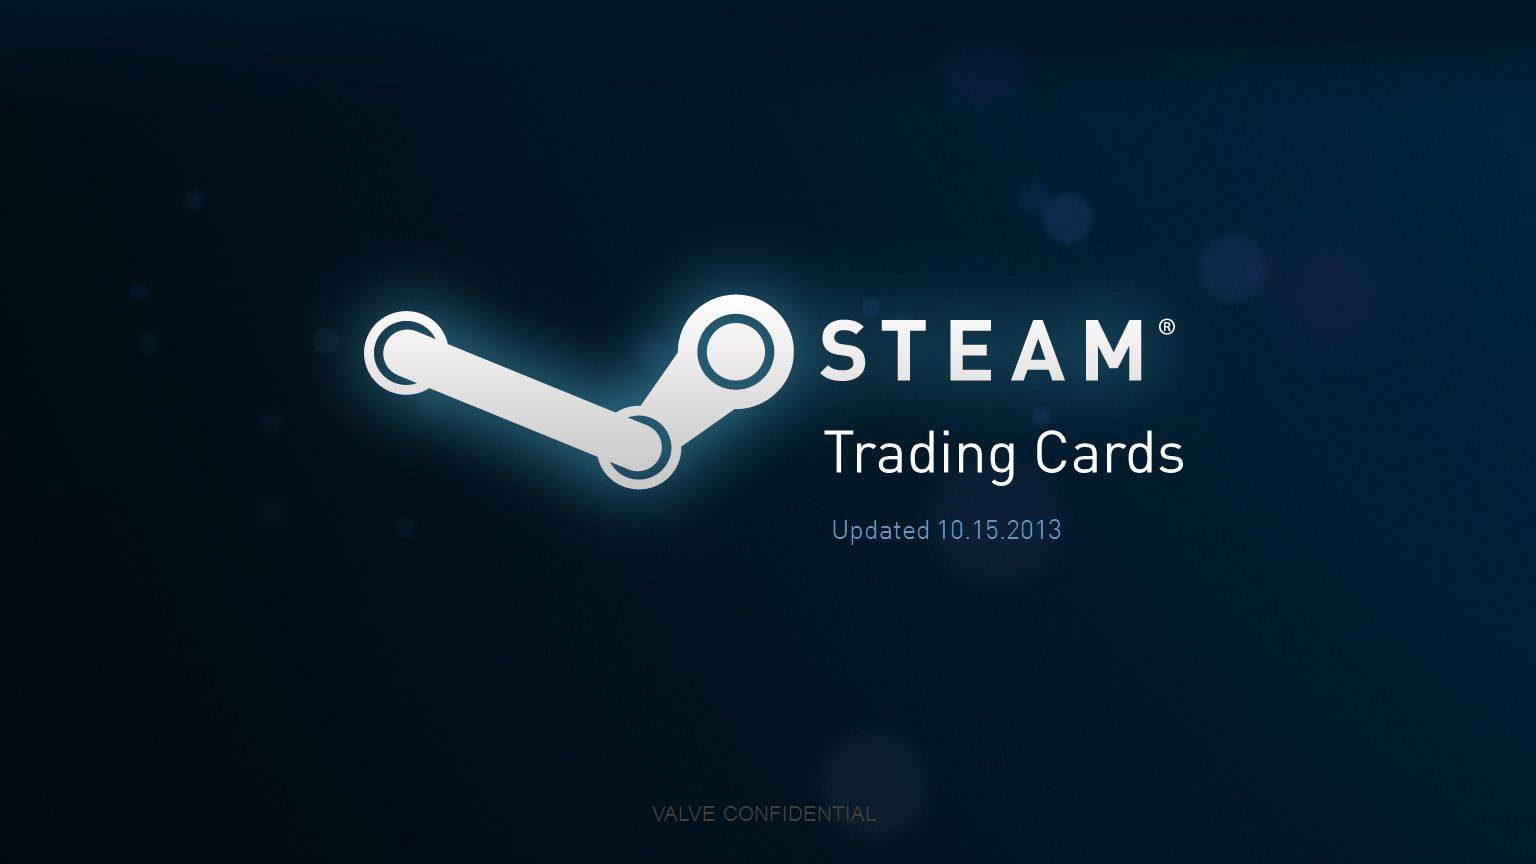 Trading Cards Updated 10.15.2013 VALVE CONFIDENTIAL